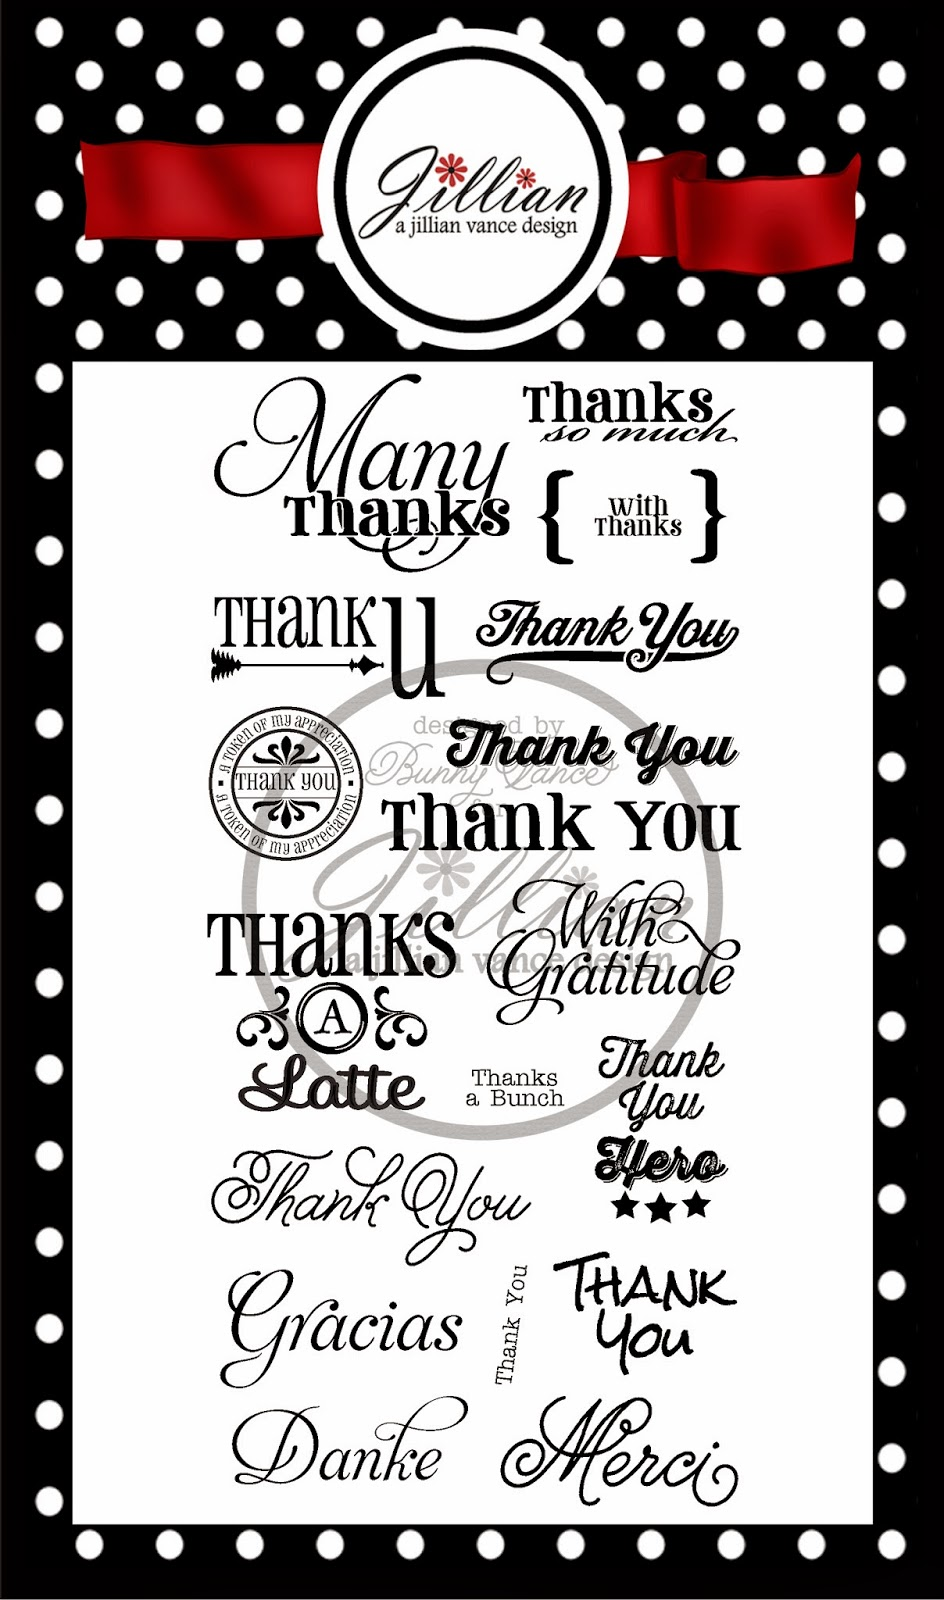 http://stores.ajillianvancedesign.com/many-thanks-4-x-8-stamp-set/